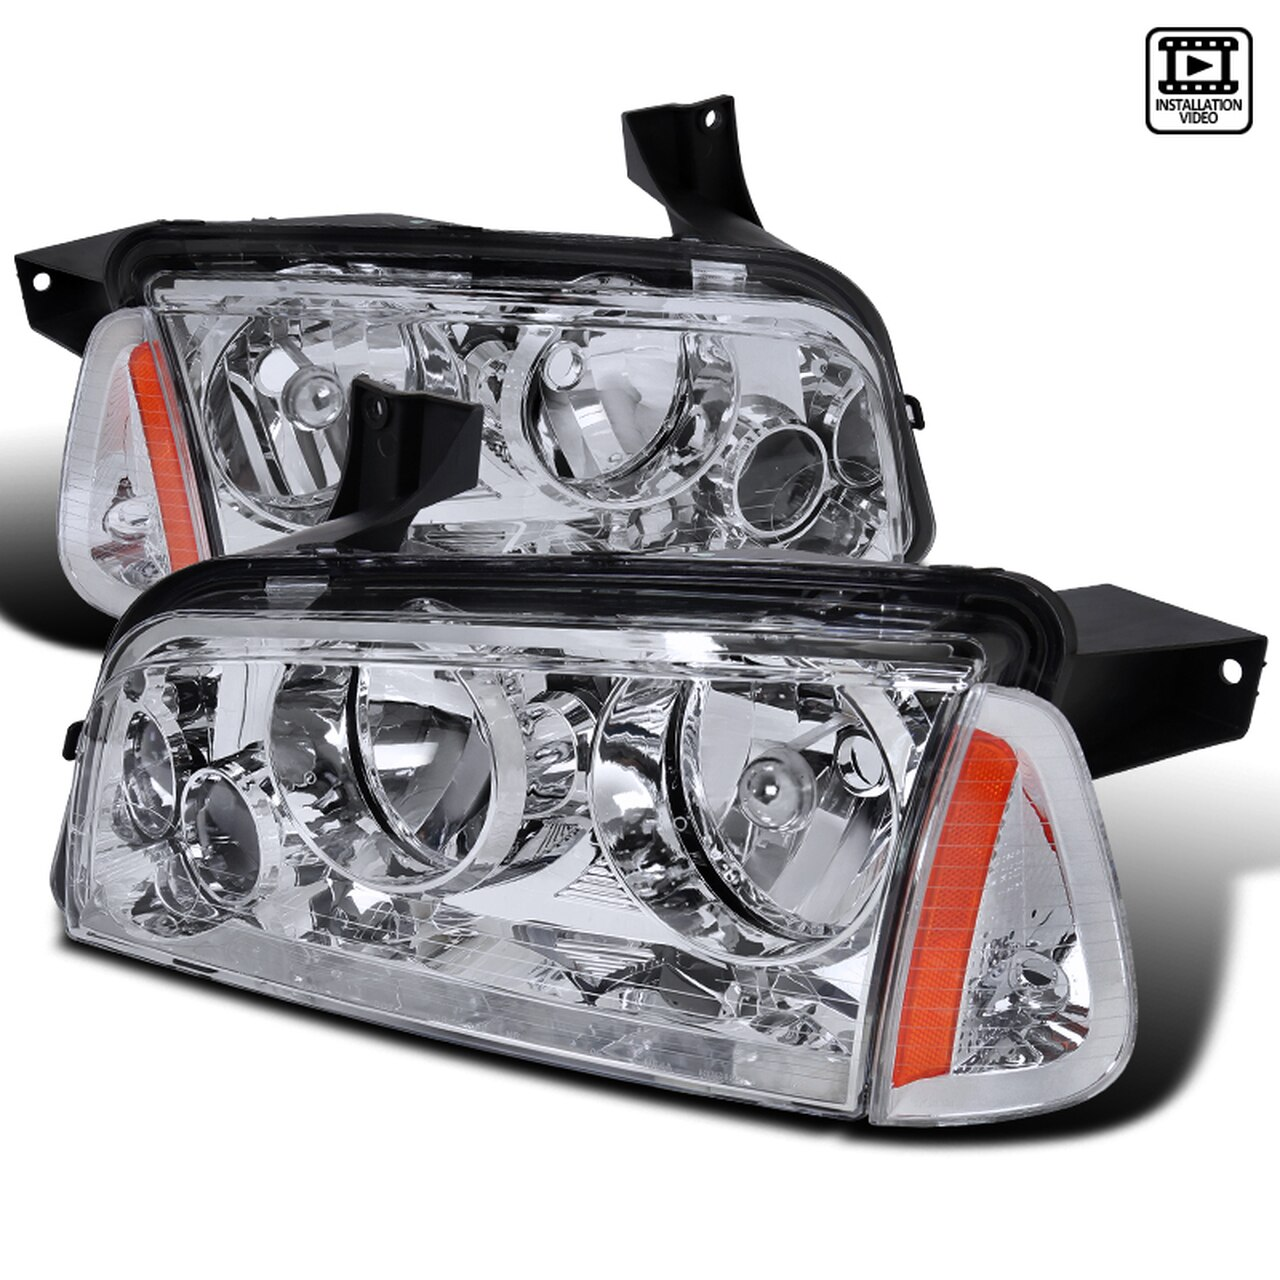 2006-2010 Dodge Charger Factory Style Headlights + Corner Lights (Chrome Housing/Clear Lens)